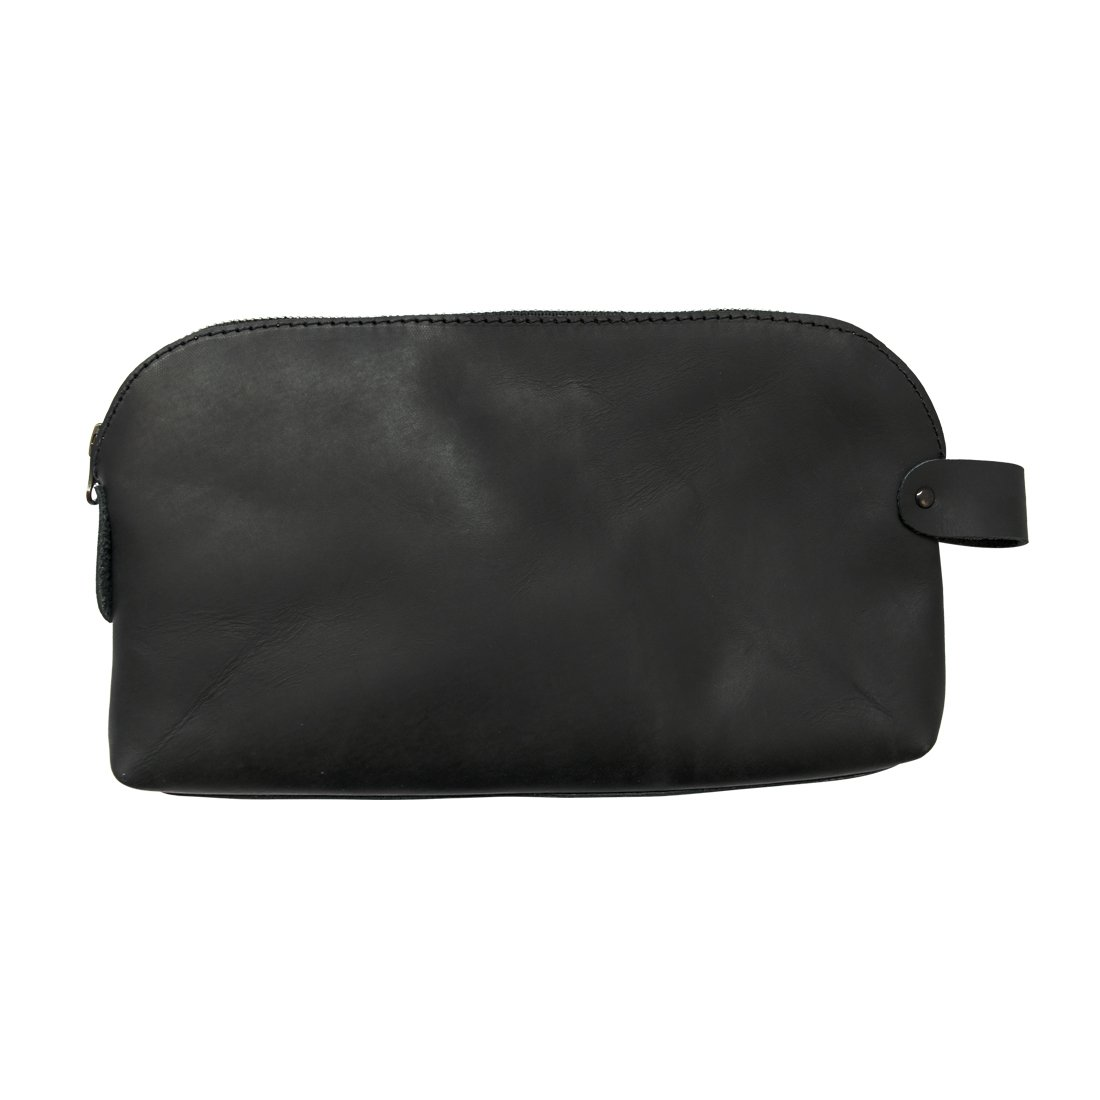 Large All Purpose Dopp Kit Utility Bag (Cords, Chargers, Tools, School / Office Supplies) Handmade by Hide & Drink :: Charcoal Black